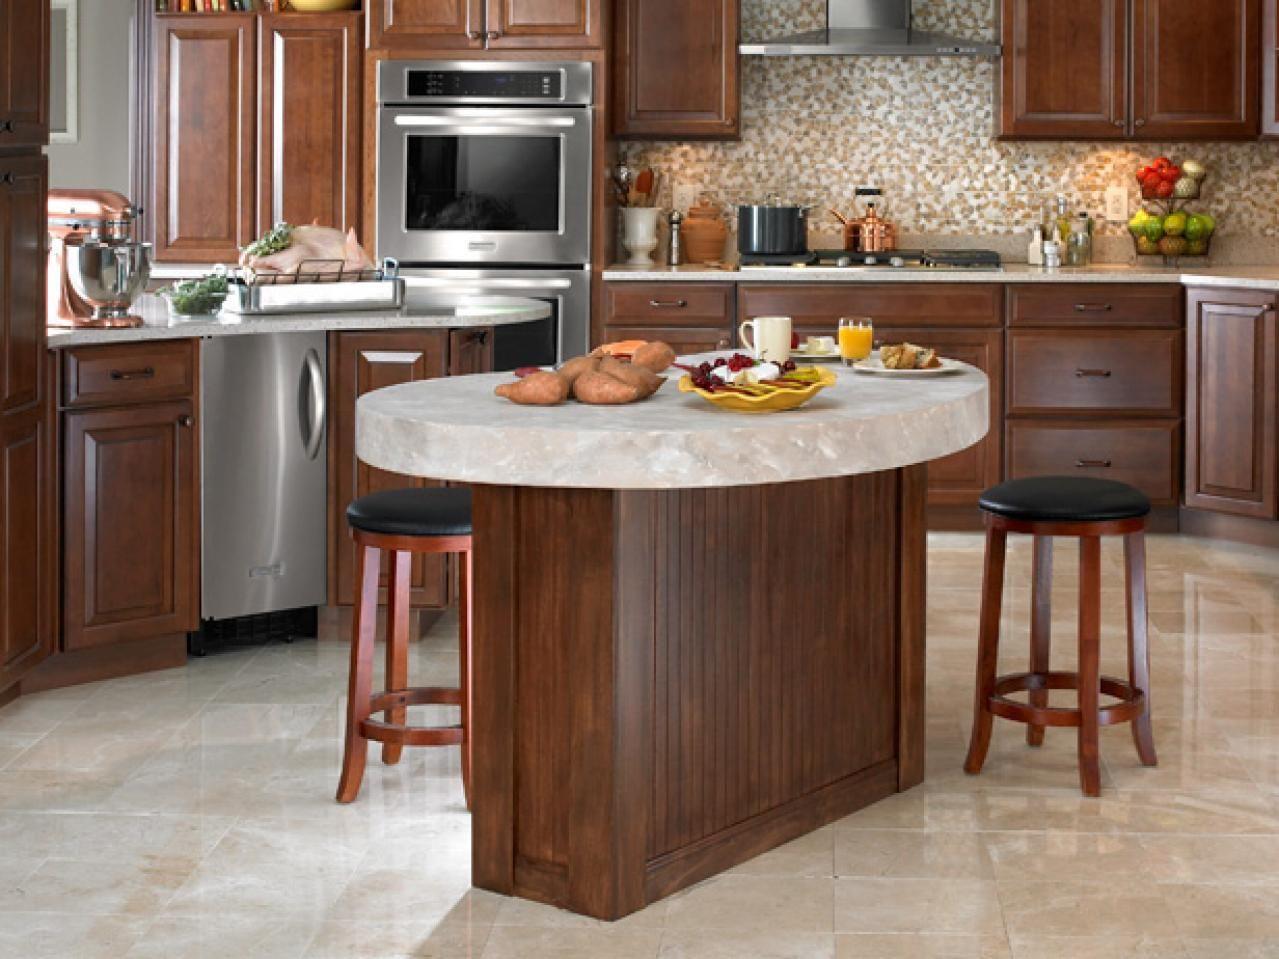 Curved Kitchen Island With Sink  Oval Kitchen Islands Design Classy Kitchen Islands Decorating Inspiration